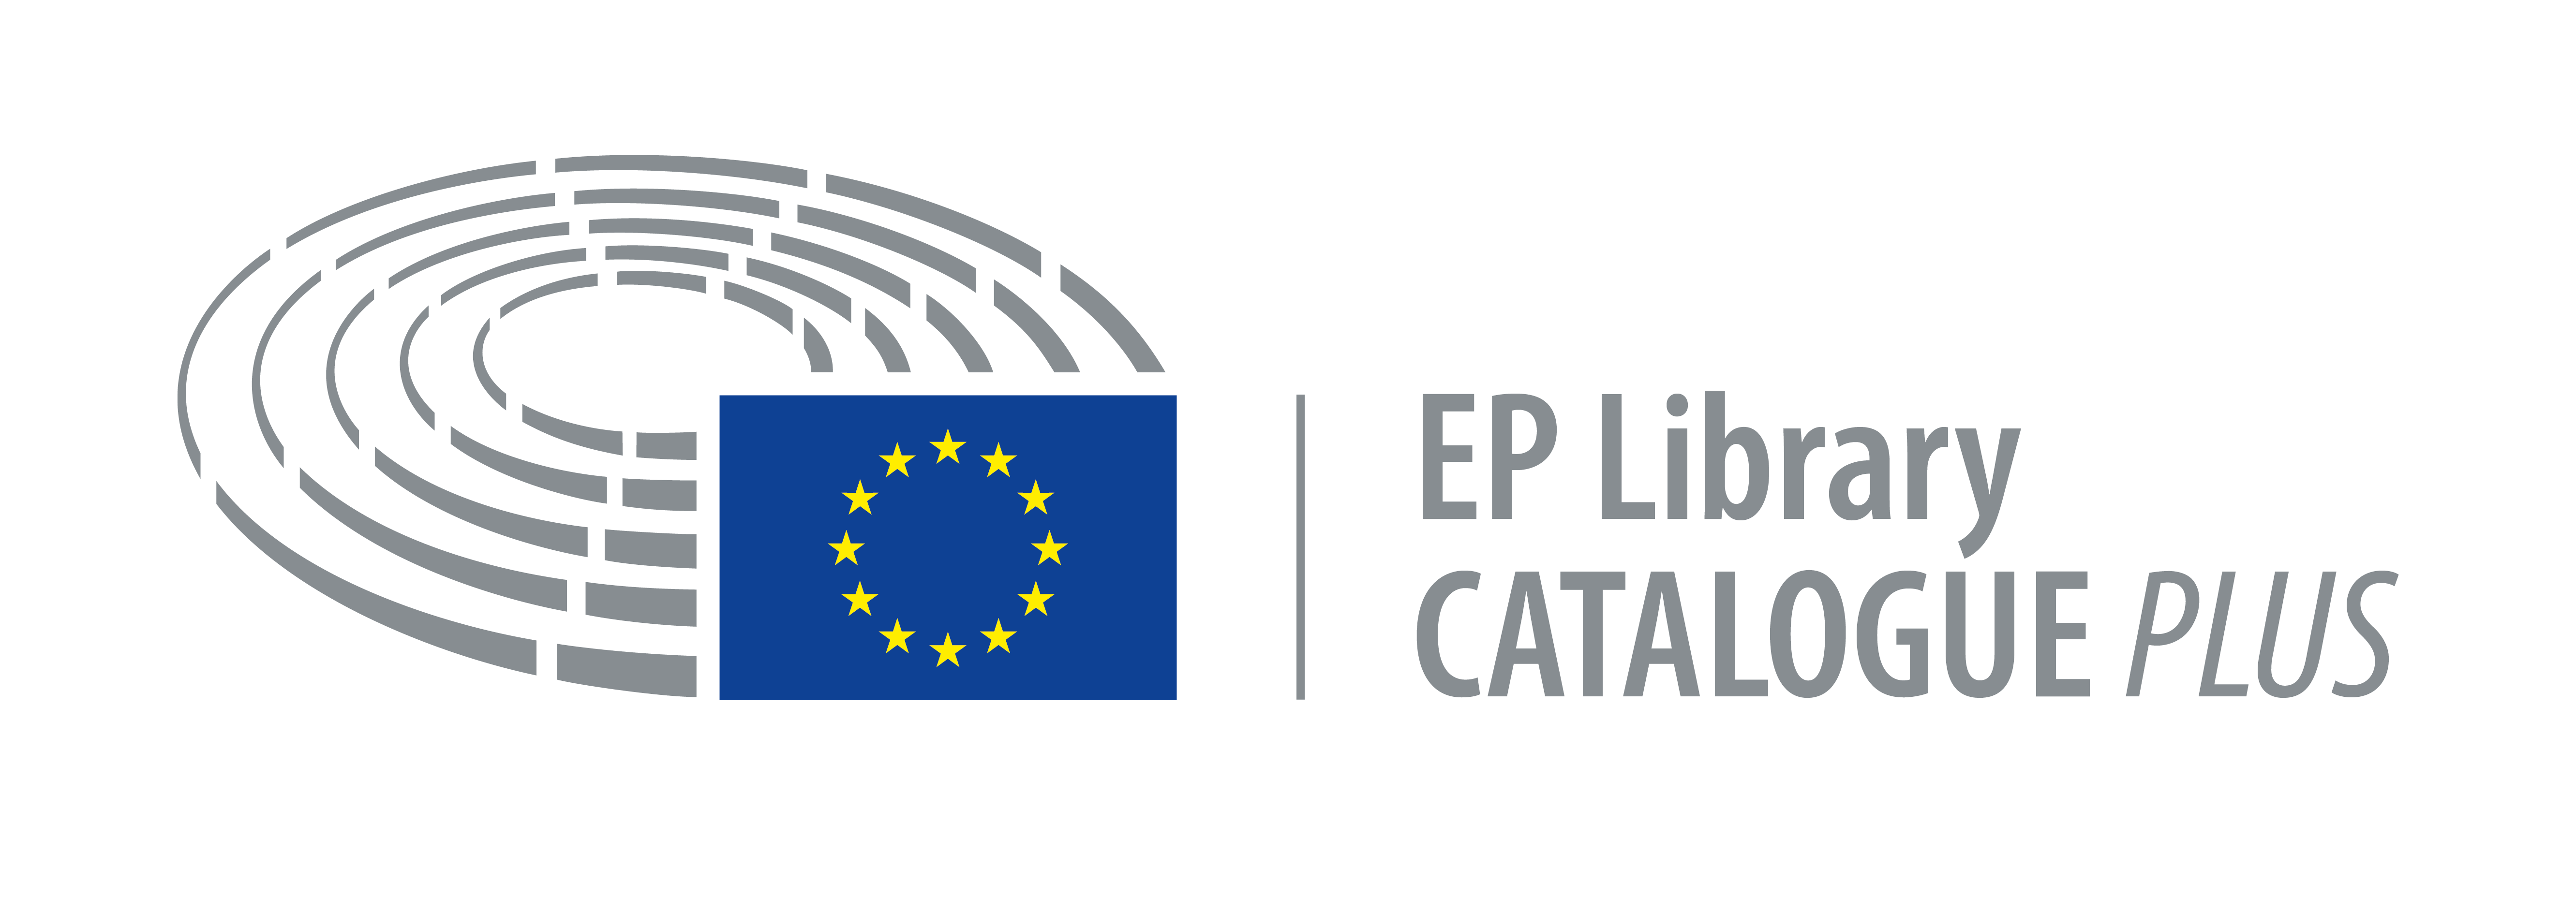 EP Library Catalogue Plus